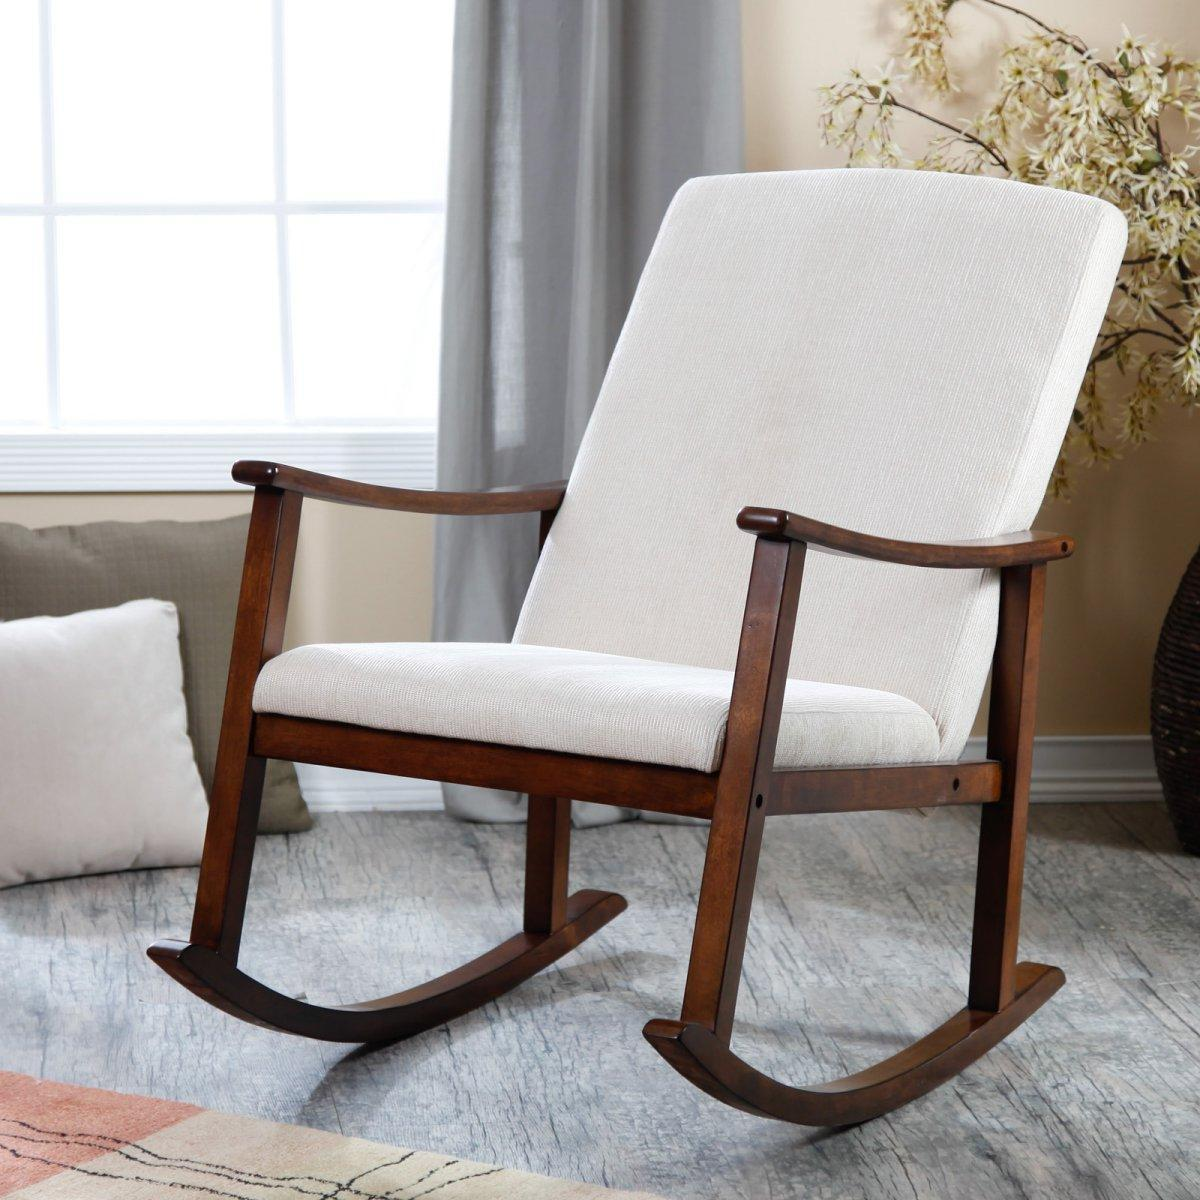 Comfortable Kids Rocking Chair (Image 1 of 5)